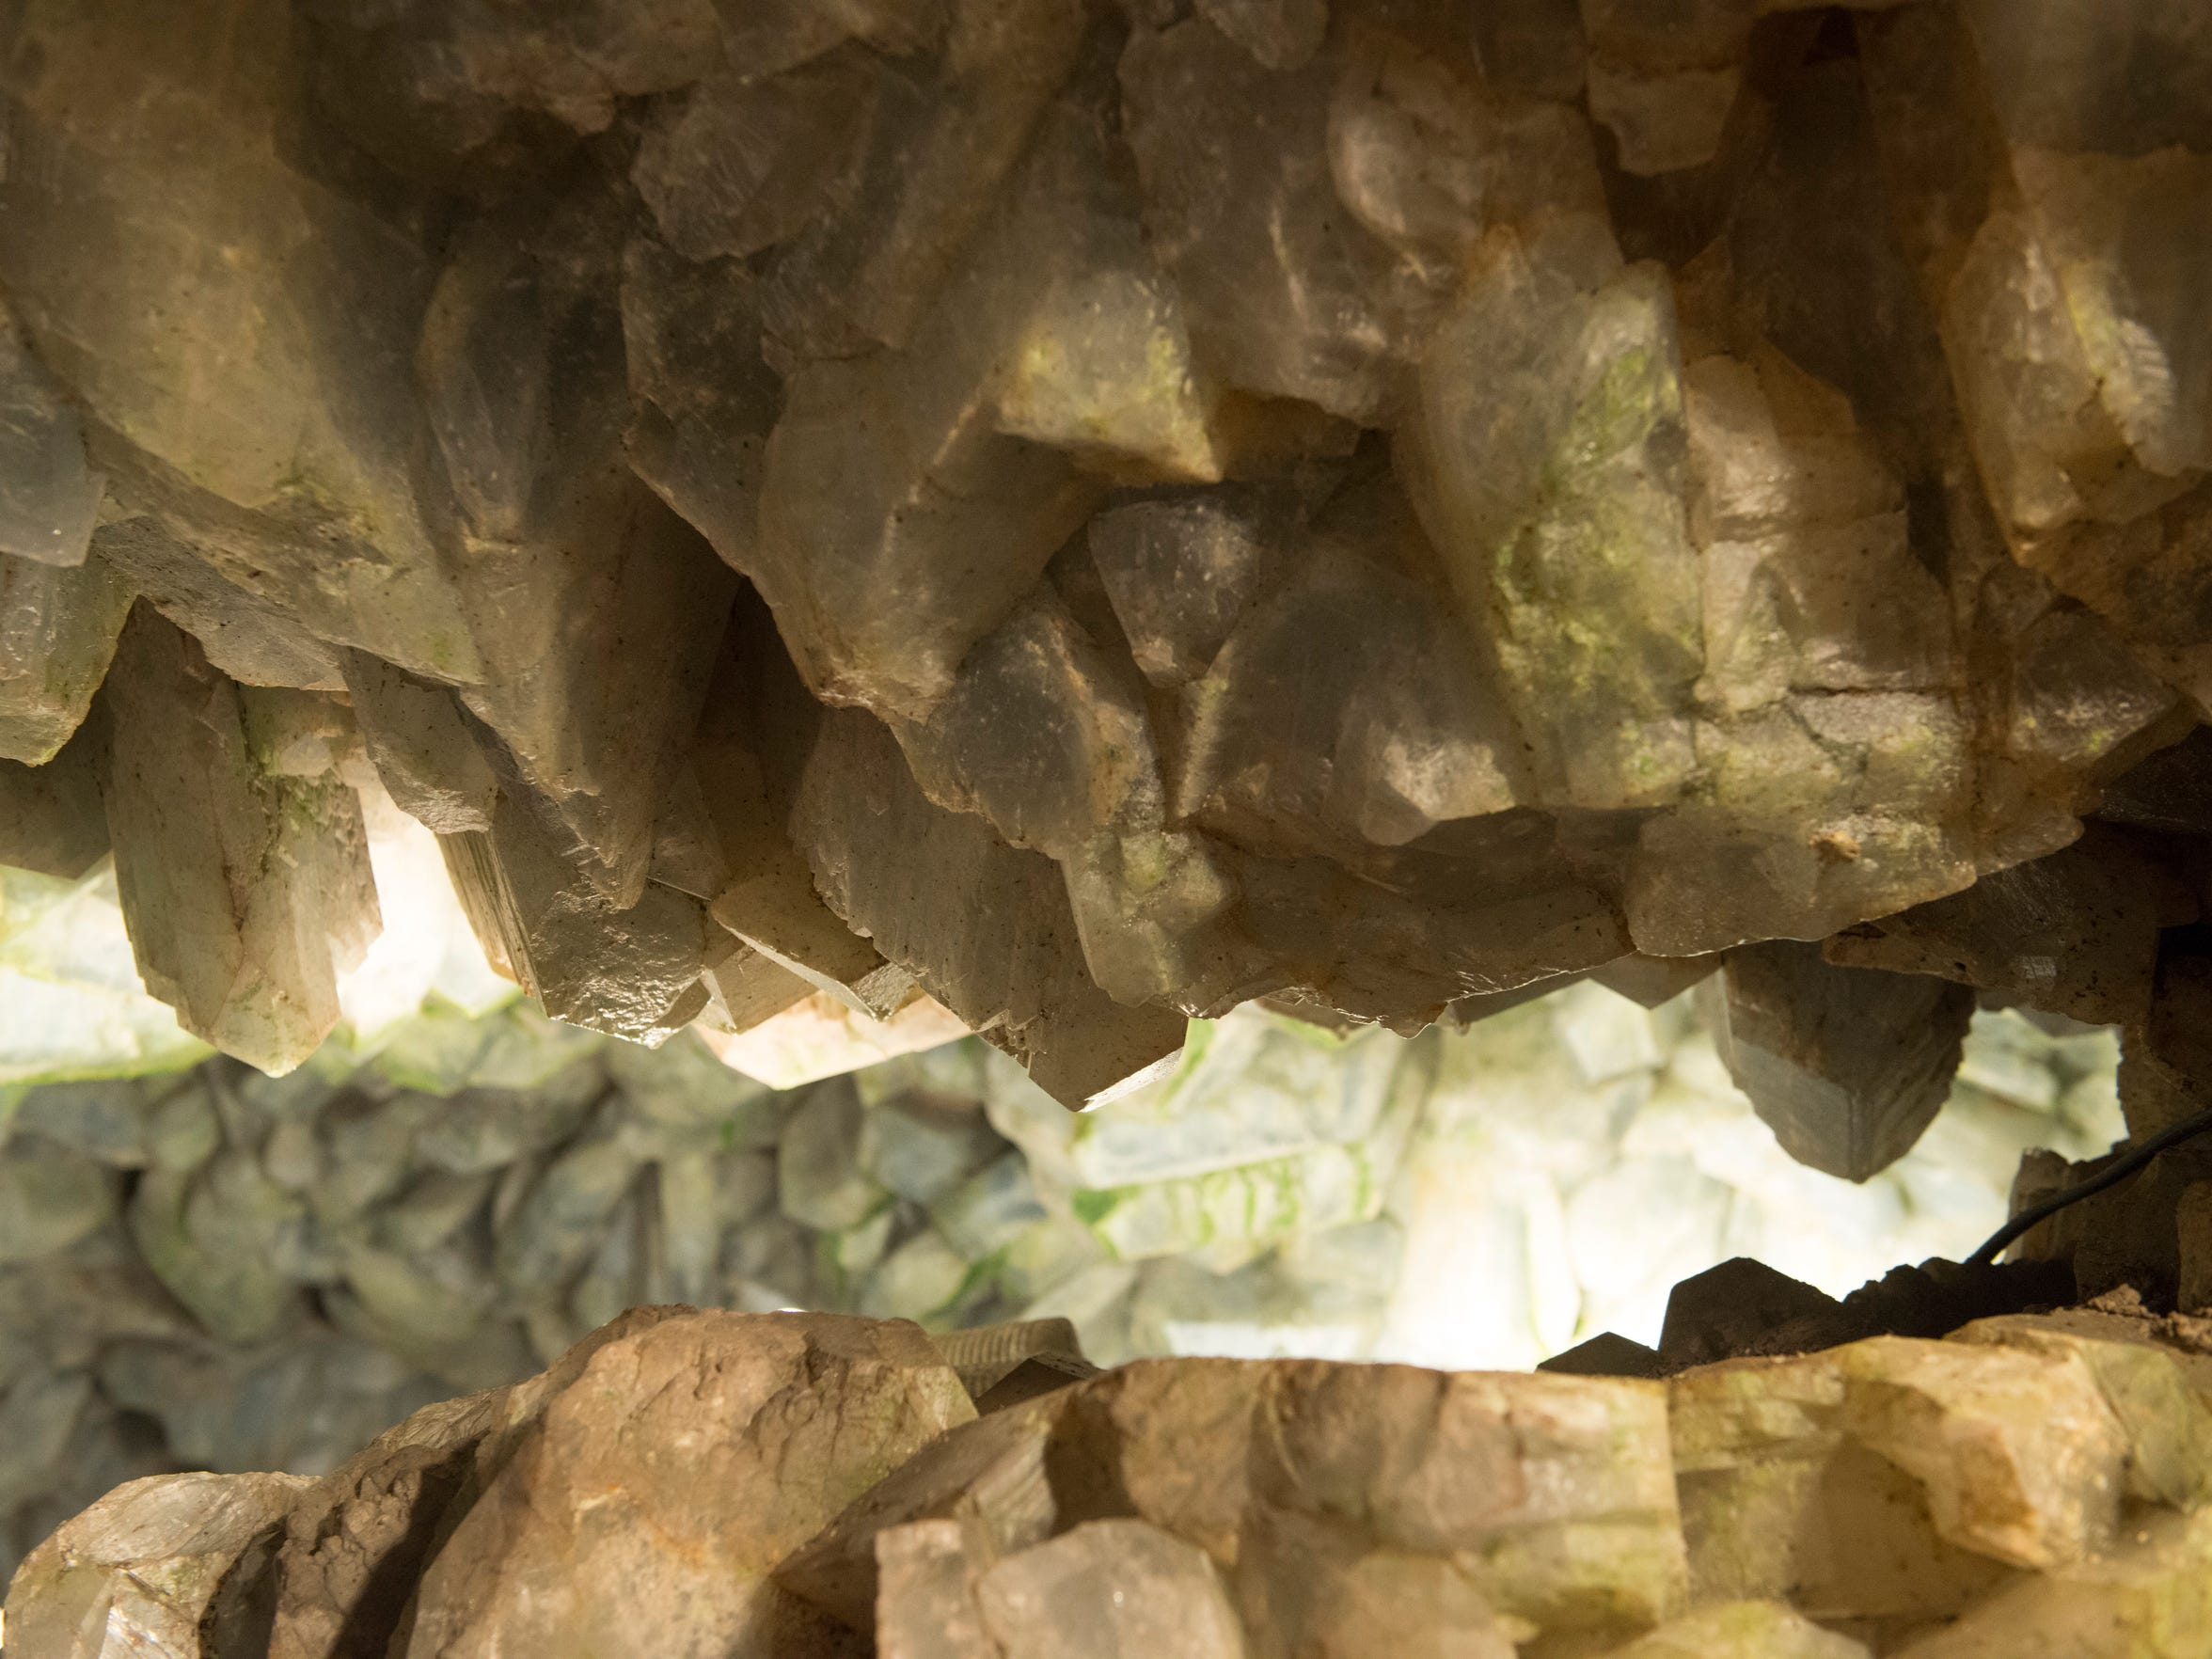 The Crystal Cave is 35 feet at the widest point, with celestine crystals up to 18 inches long.